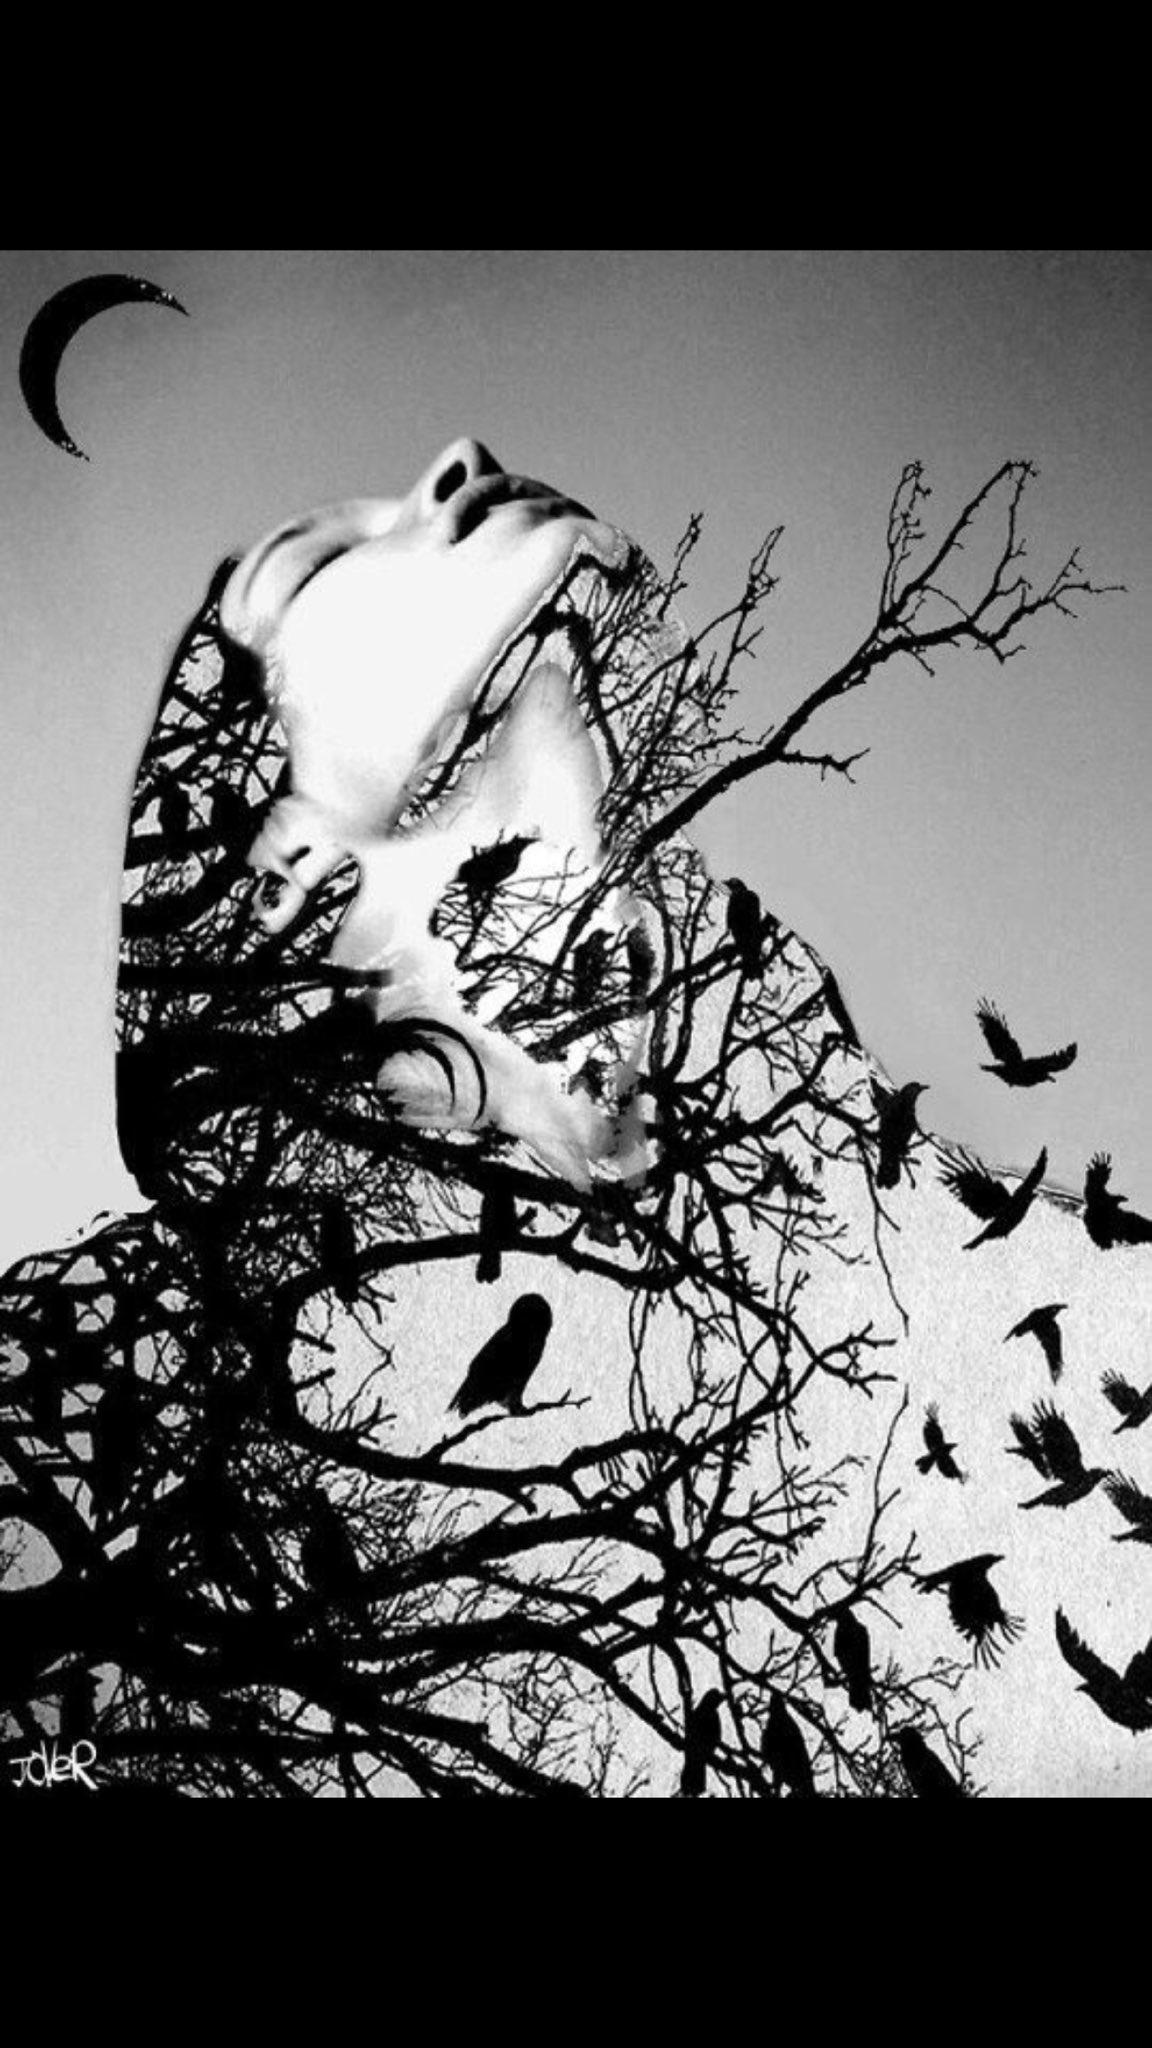 She sparkles  Like moon &  Fades like night You read her  But you don't know How she survives  #darklines #amwriting https://t.co/xH01j1vpML